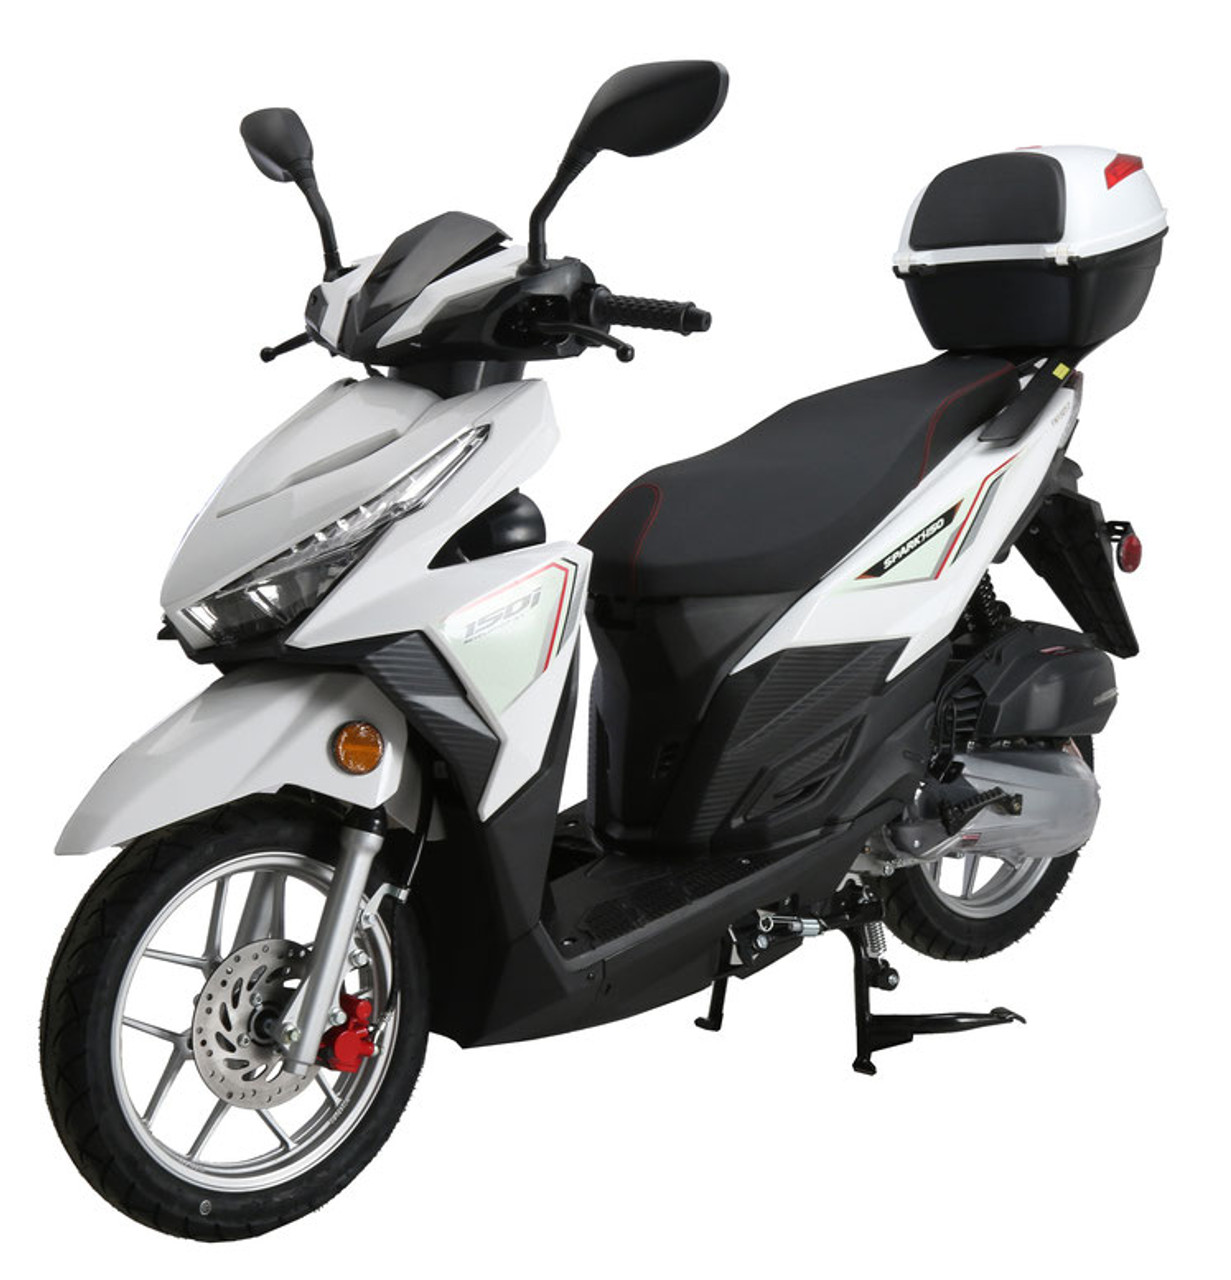 Vitacci SPARK 150cc Scooter, GY6 4-Stroke, Air Cooled- Fully Assembled and Tested